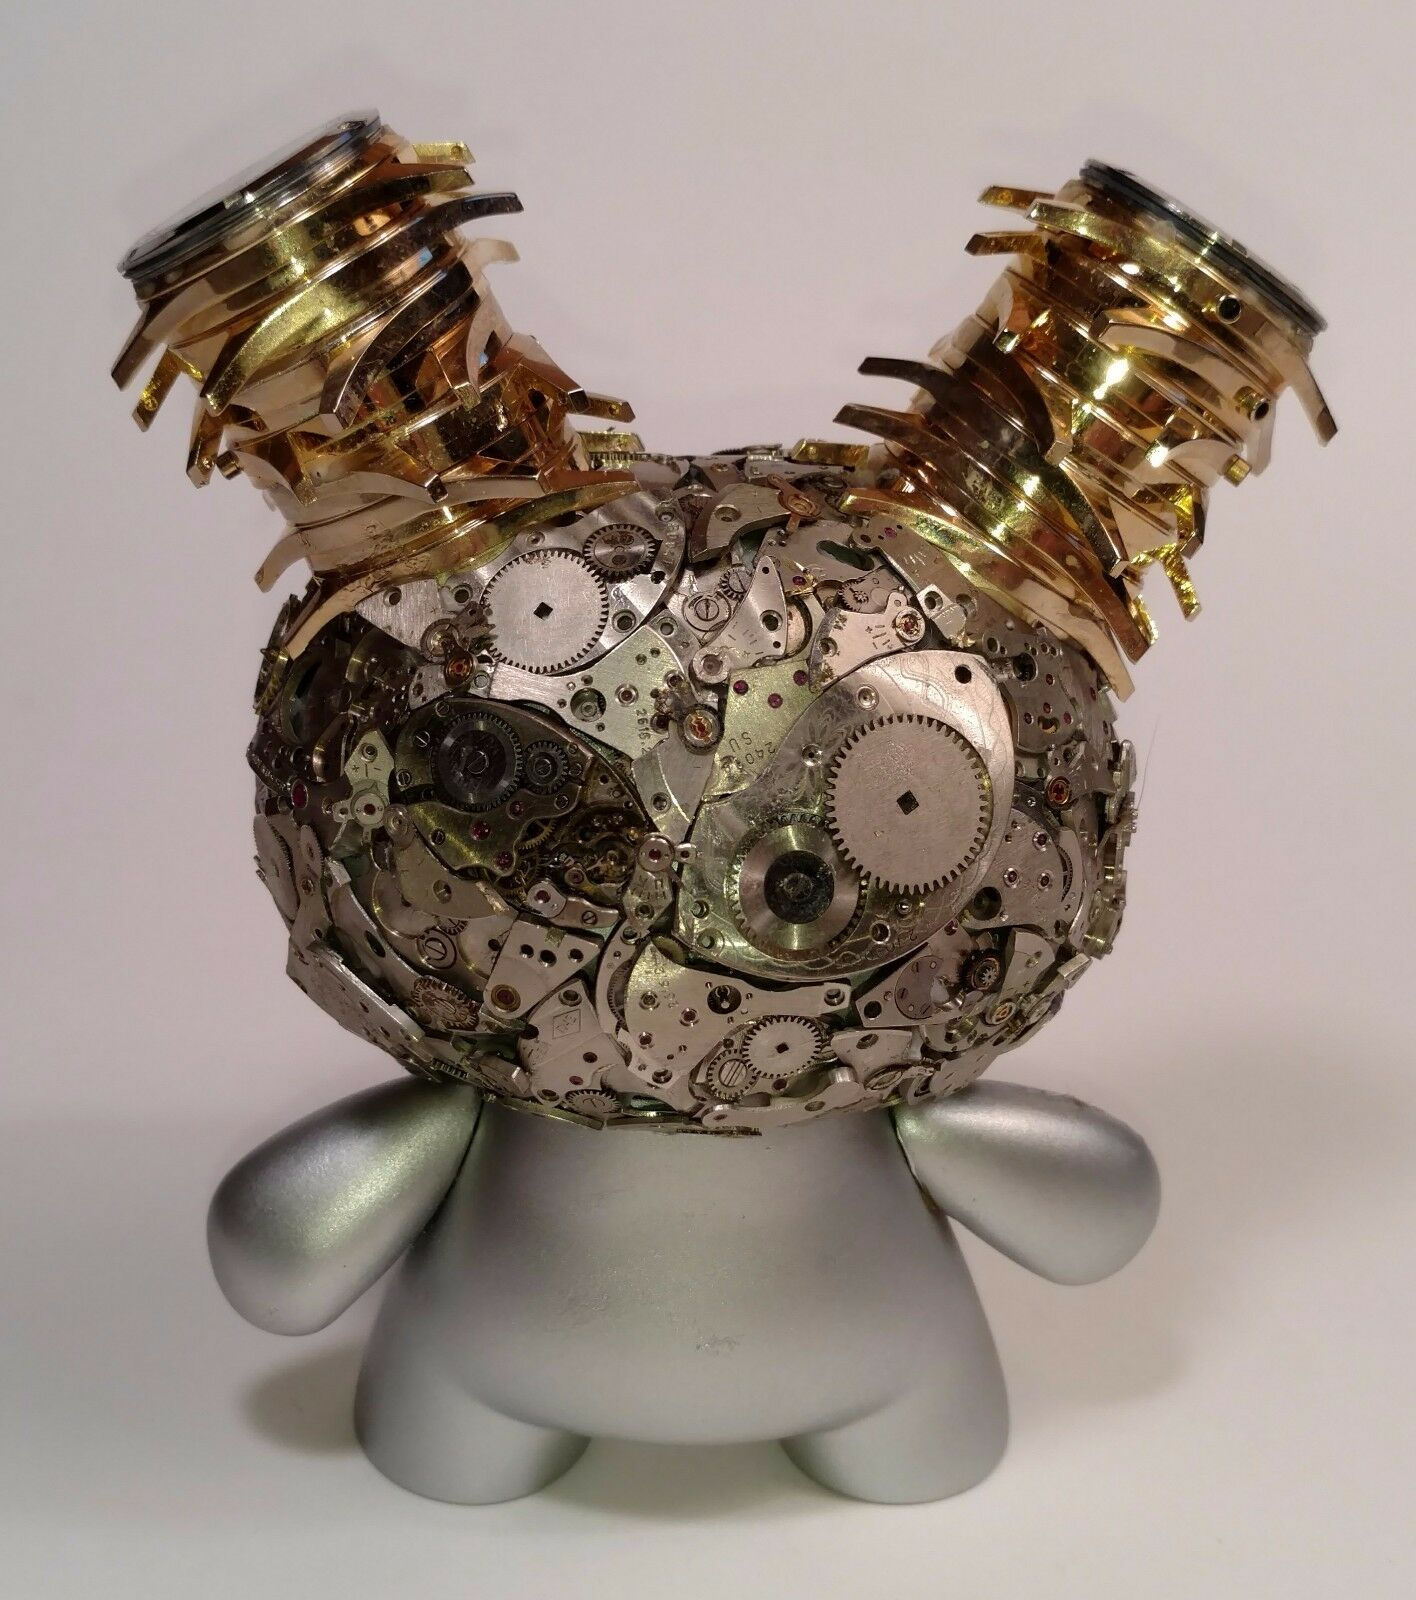 Kidrobot Exquisite Steampunk Watch Parts Dunny Series THE WATCHER Dan Dan Dan Tanenbaum c5f102